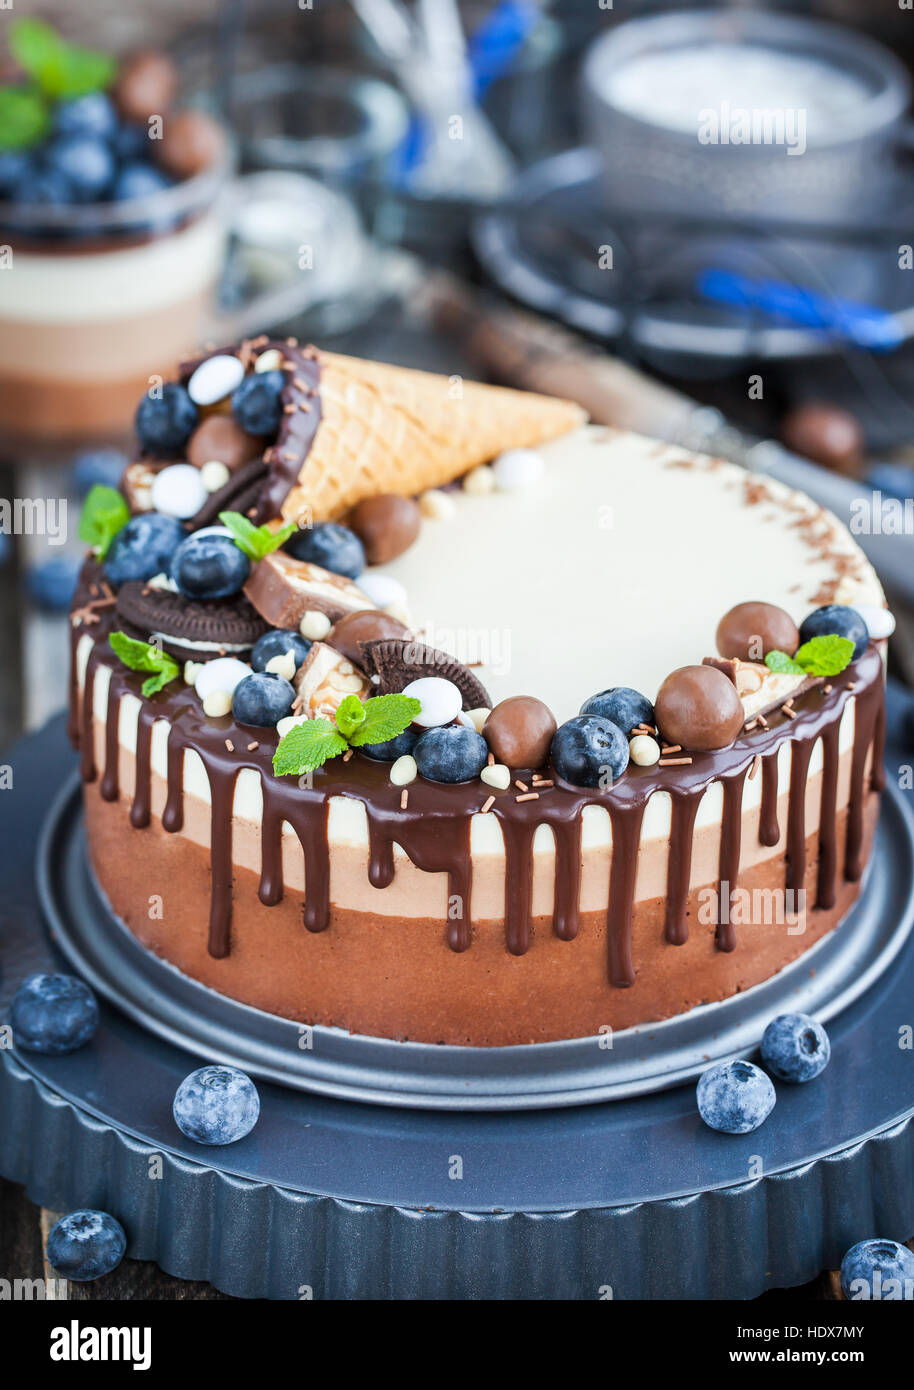 Delicious three chocolate mousse cake decorated with waffle cone, fresh blueberry, mint, candies and frosting Stock Photo